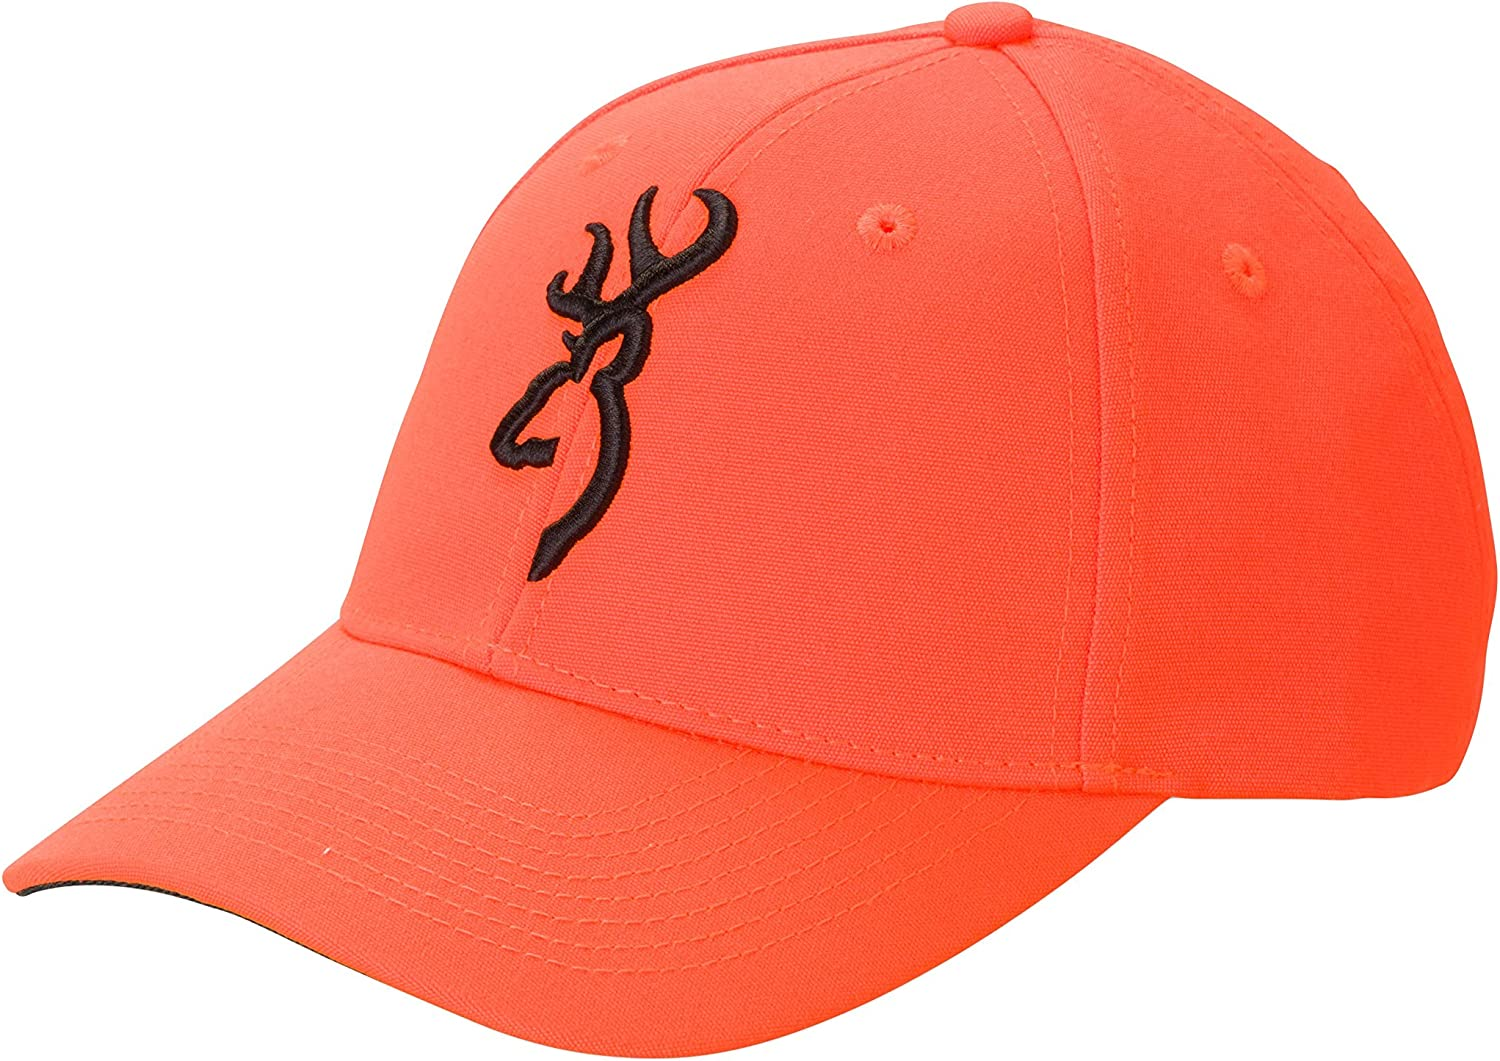 Browning Safety Cap with 3-D Buckmark, Blaze, Adult Cap Adjustable fit 30840501